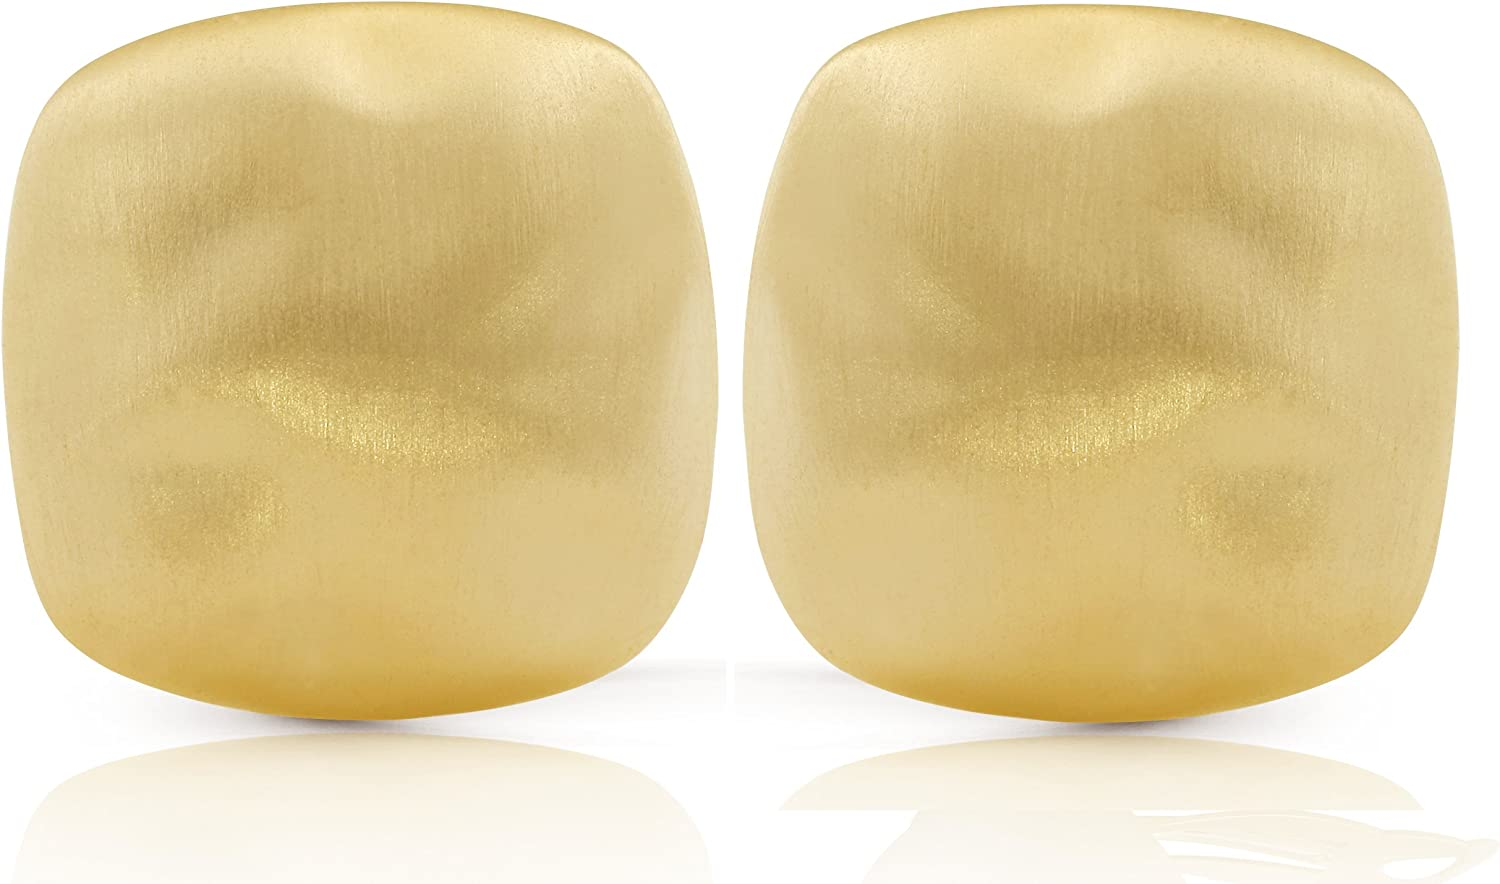 JanKuo Jewelry Gold Plated Large Square Matte Finish Clip On Earrings